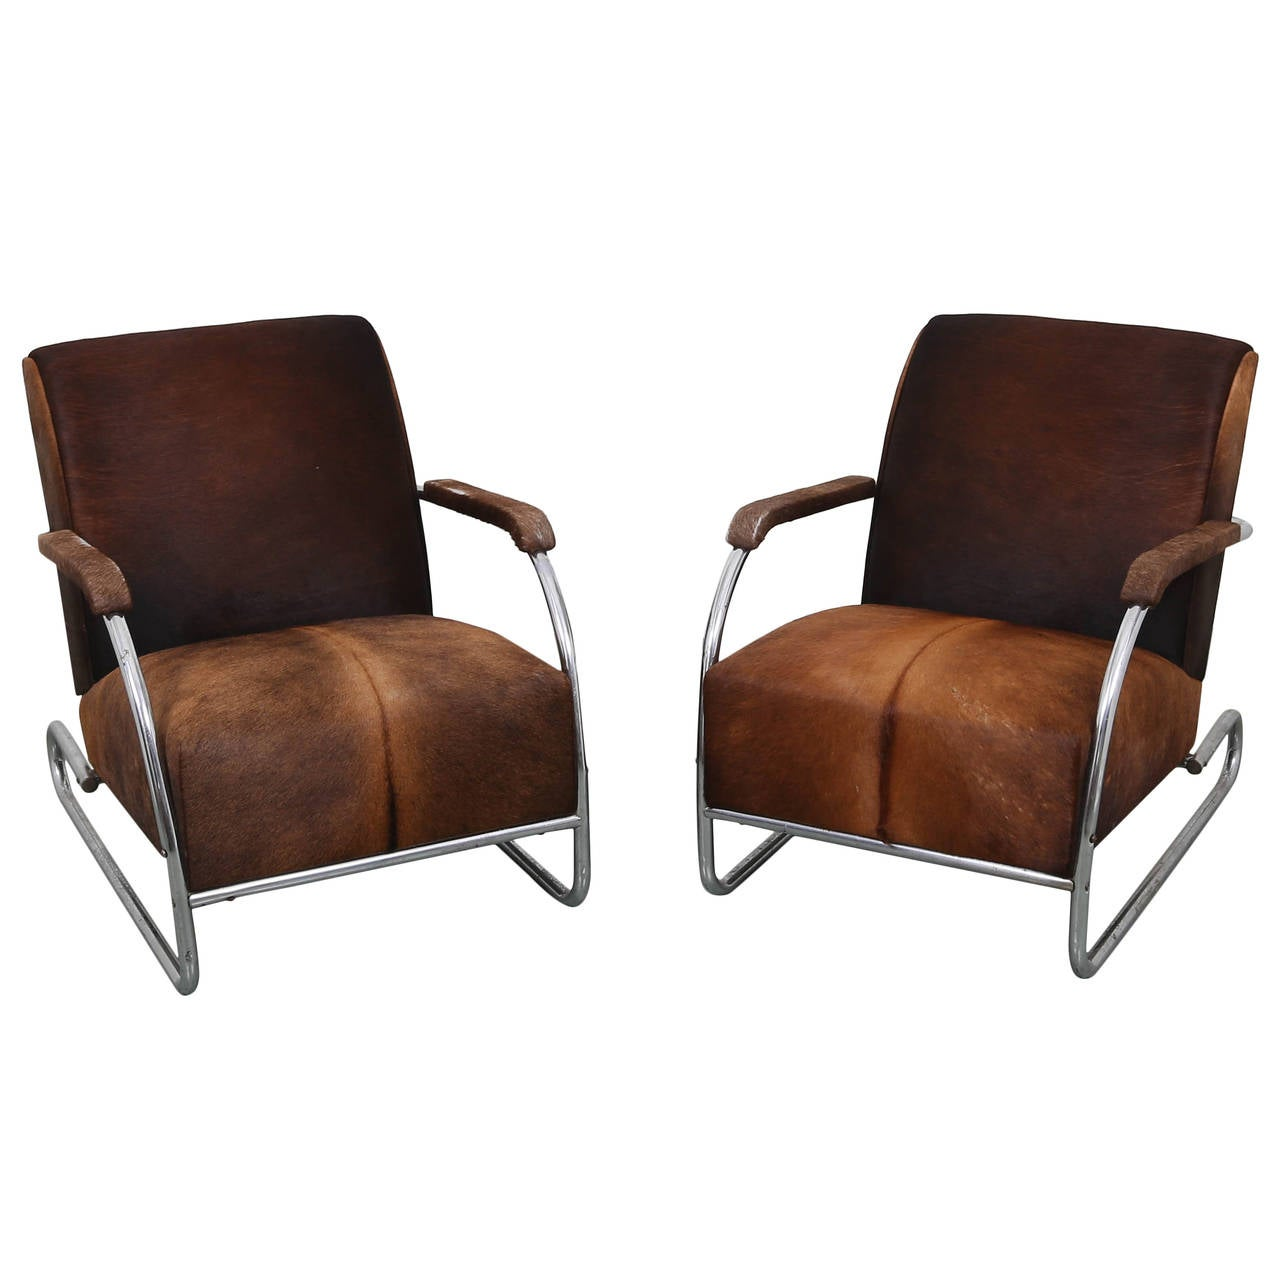 Pair Of Art Deco Cowhide And Chrome Lounge Chairs At 1stdibs